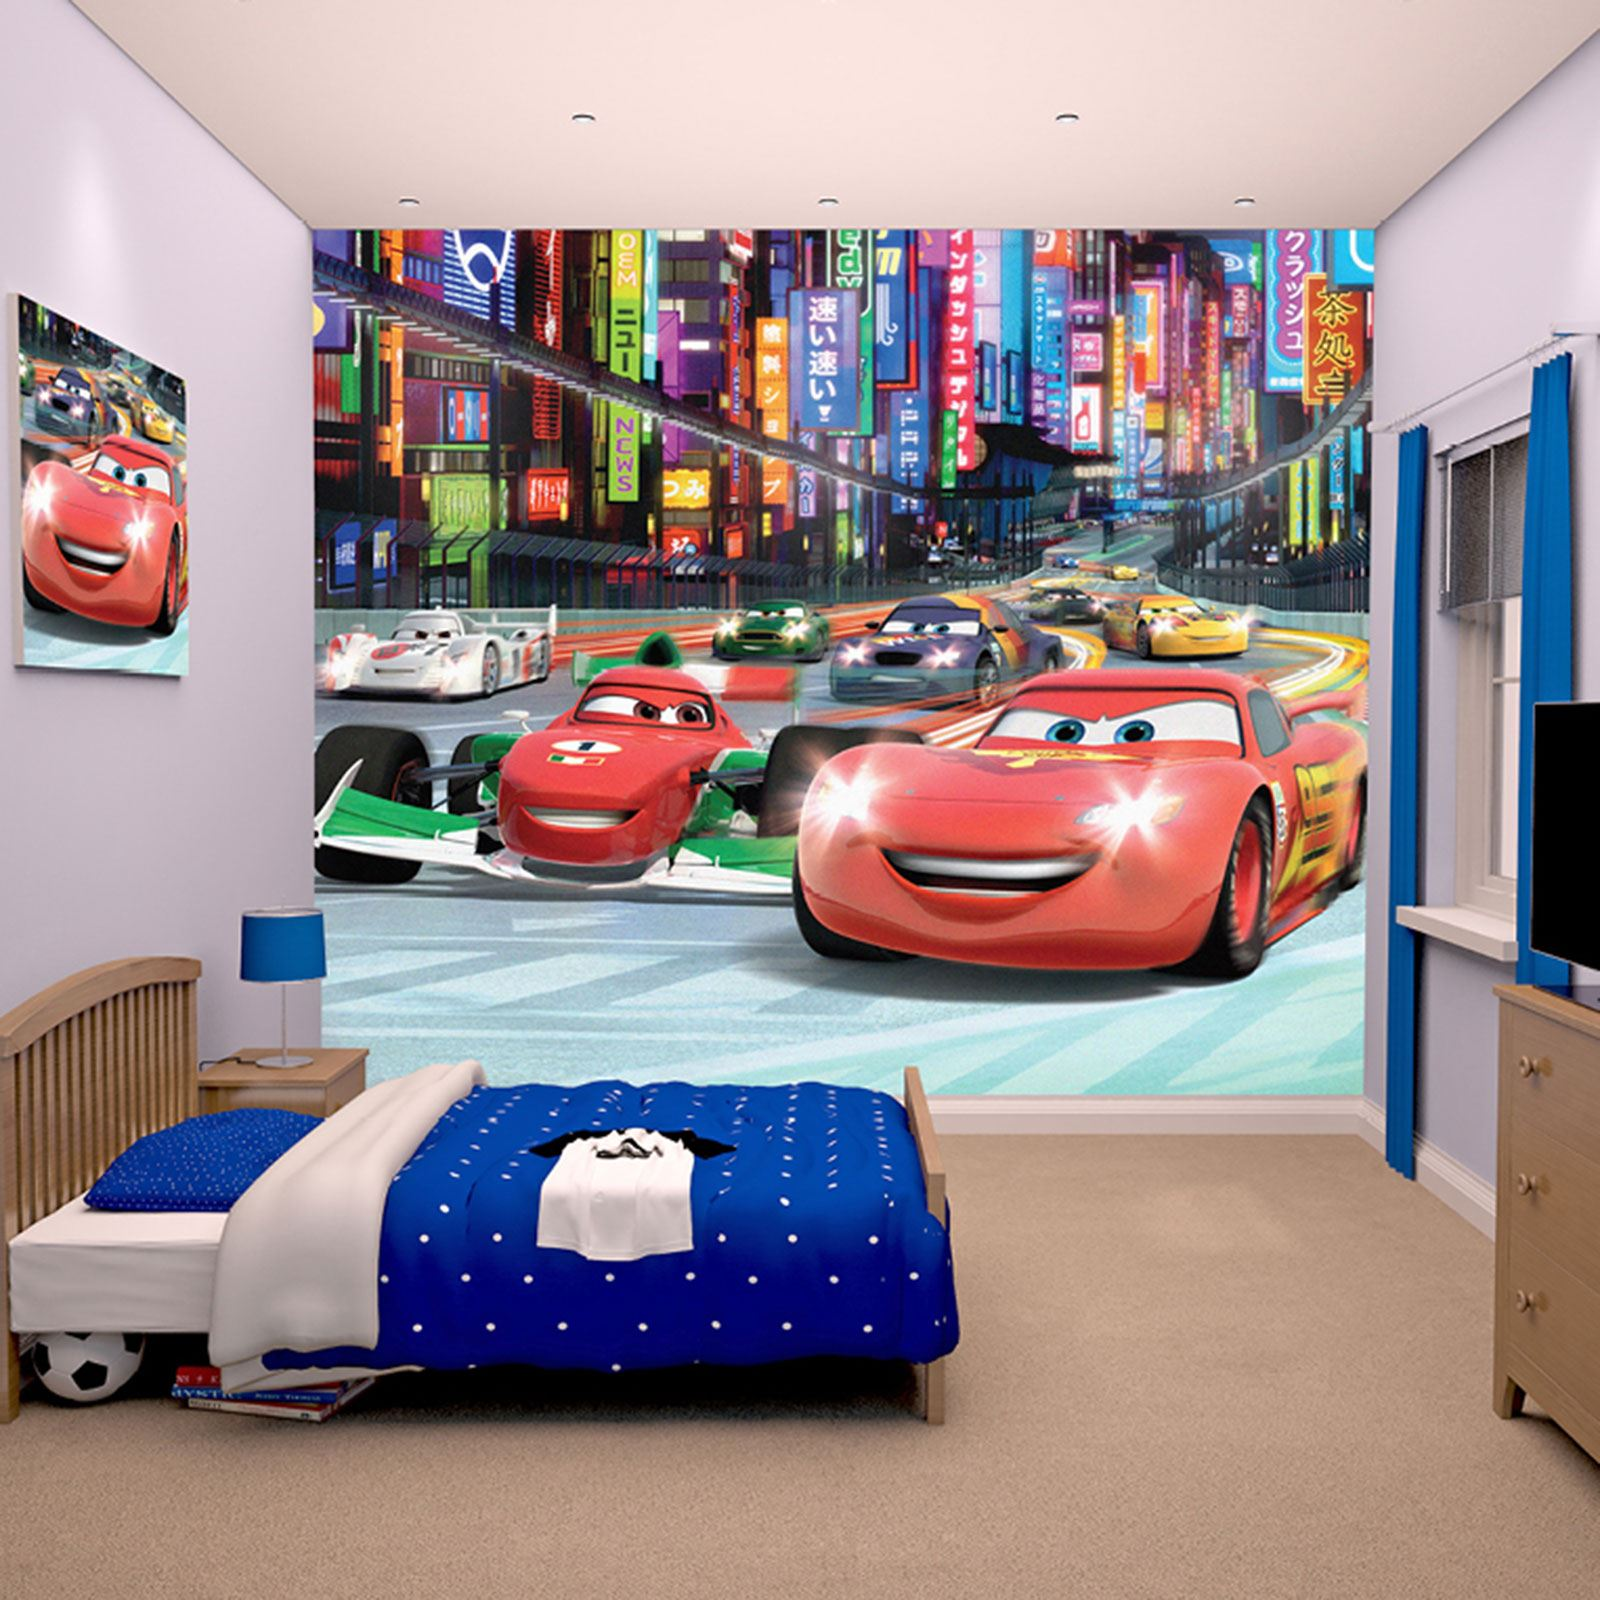 DISNEY CARS WALL MURALS 6 DESIGNS AVAILABLE KIDS  Part 78